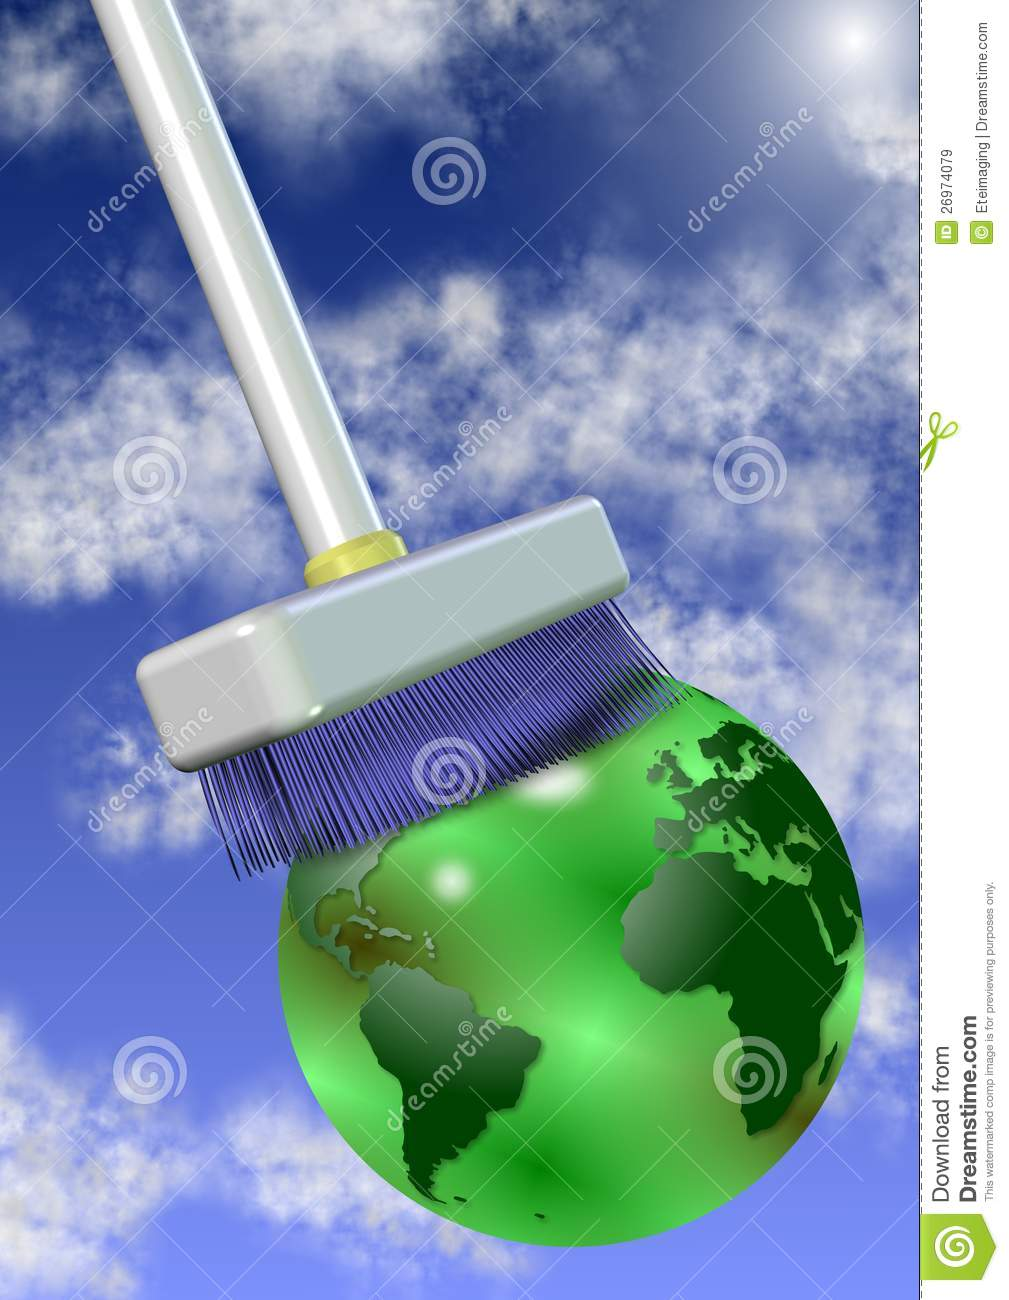 Clean The Planet Royalty Free Stock Images - Image: 26974079